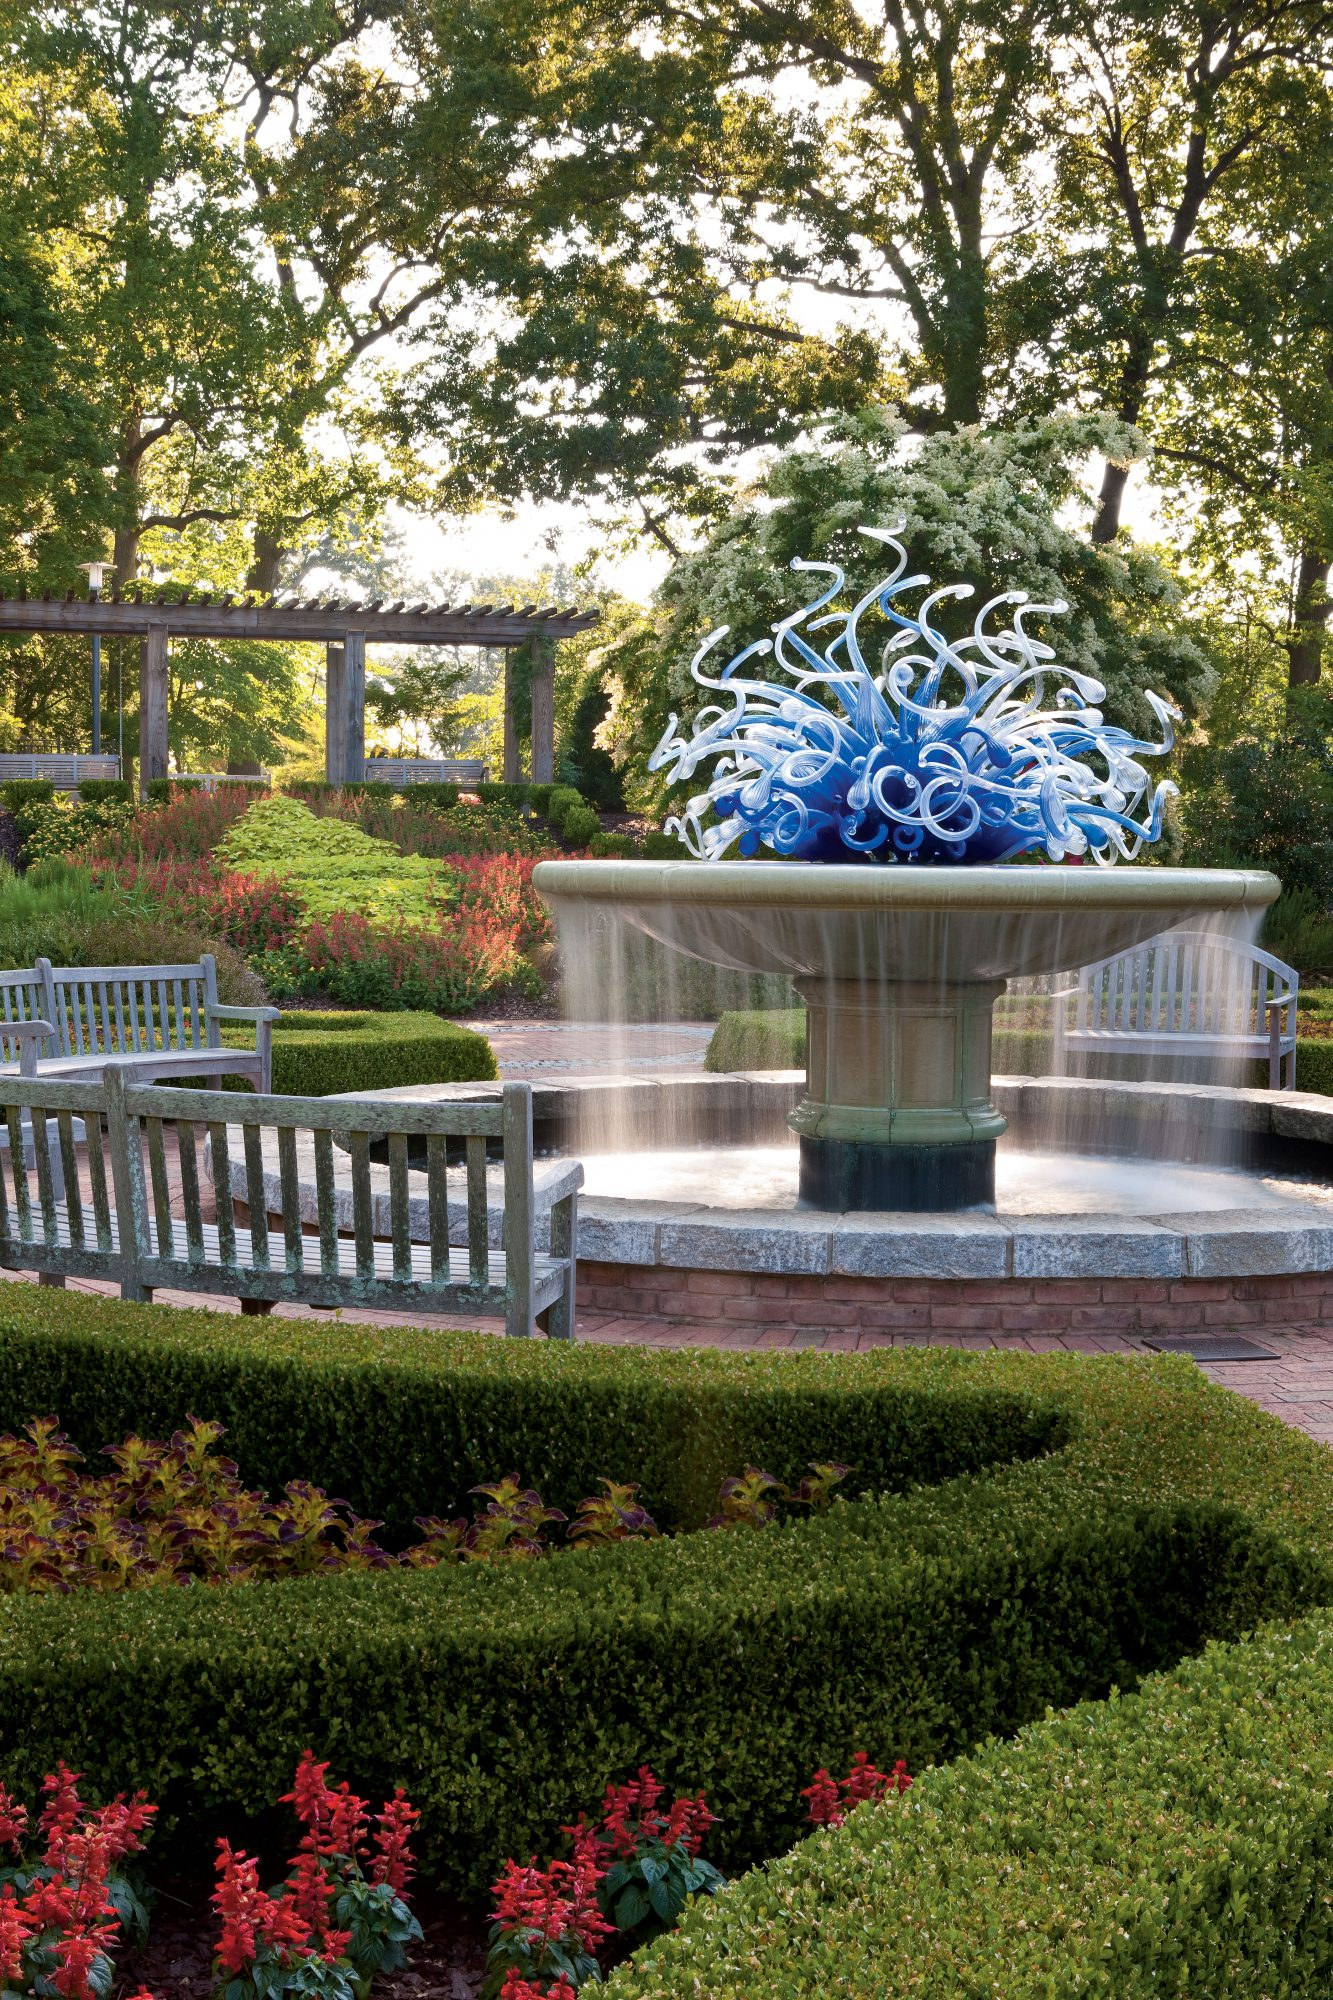 Dale Chihuly Garden Sculpture